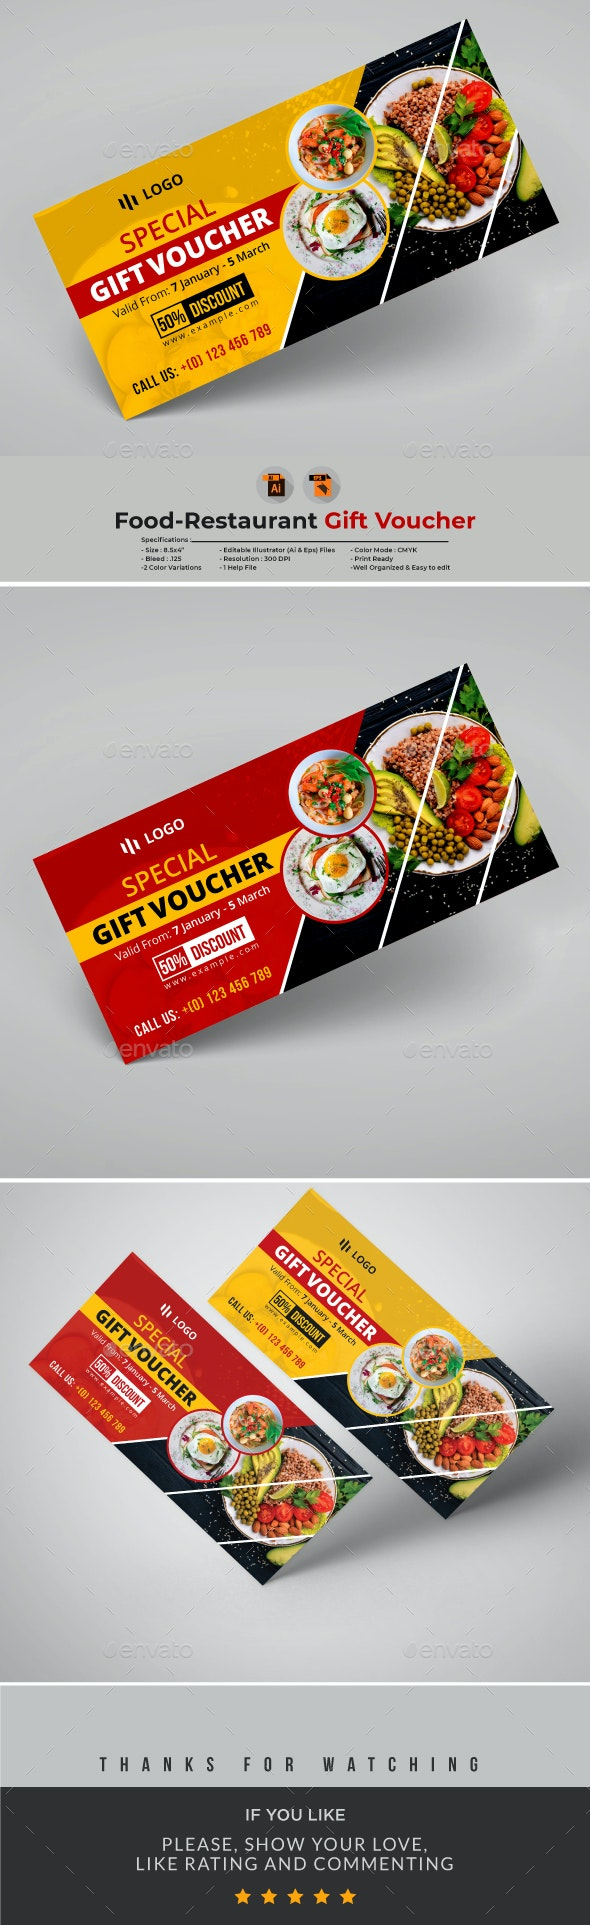 Food-Restaurant Gift Voucher Template - Loyalty Cards Cards & Invites